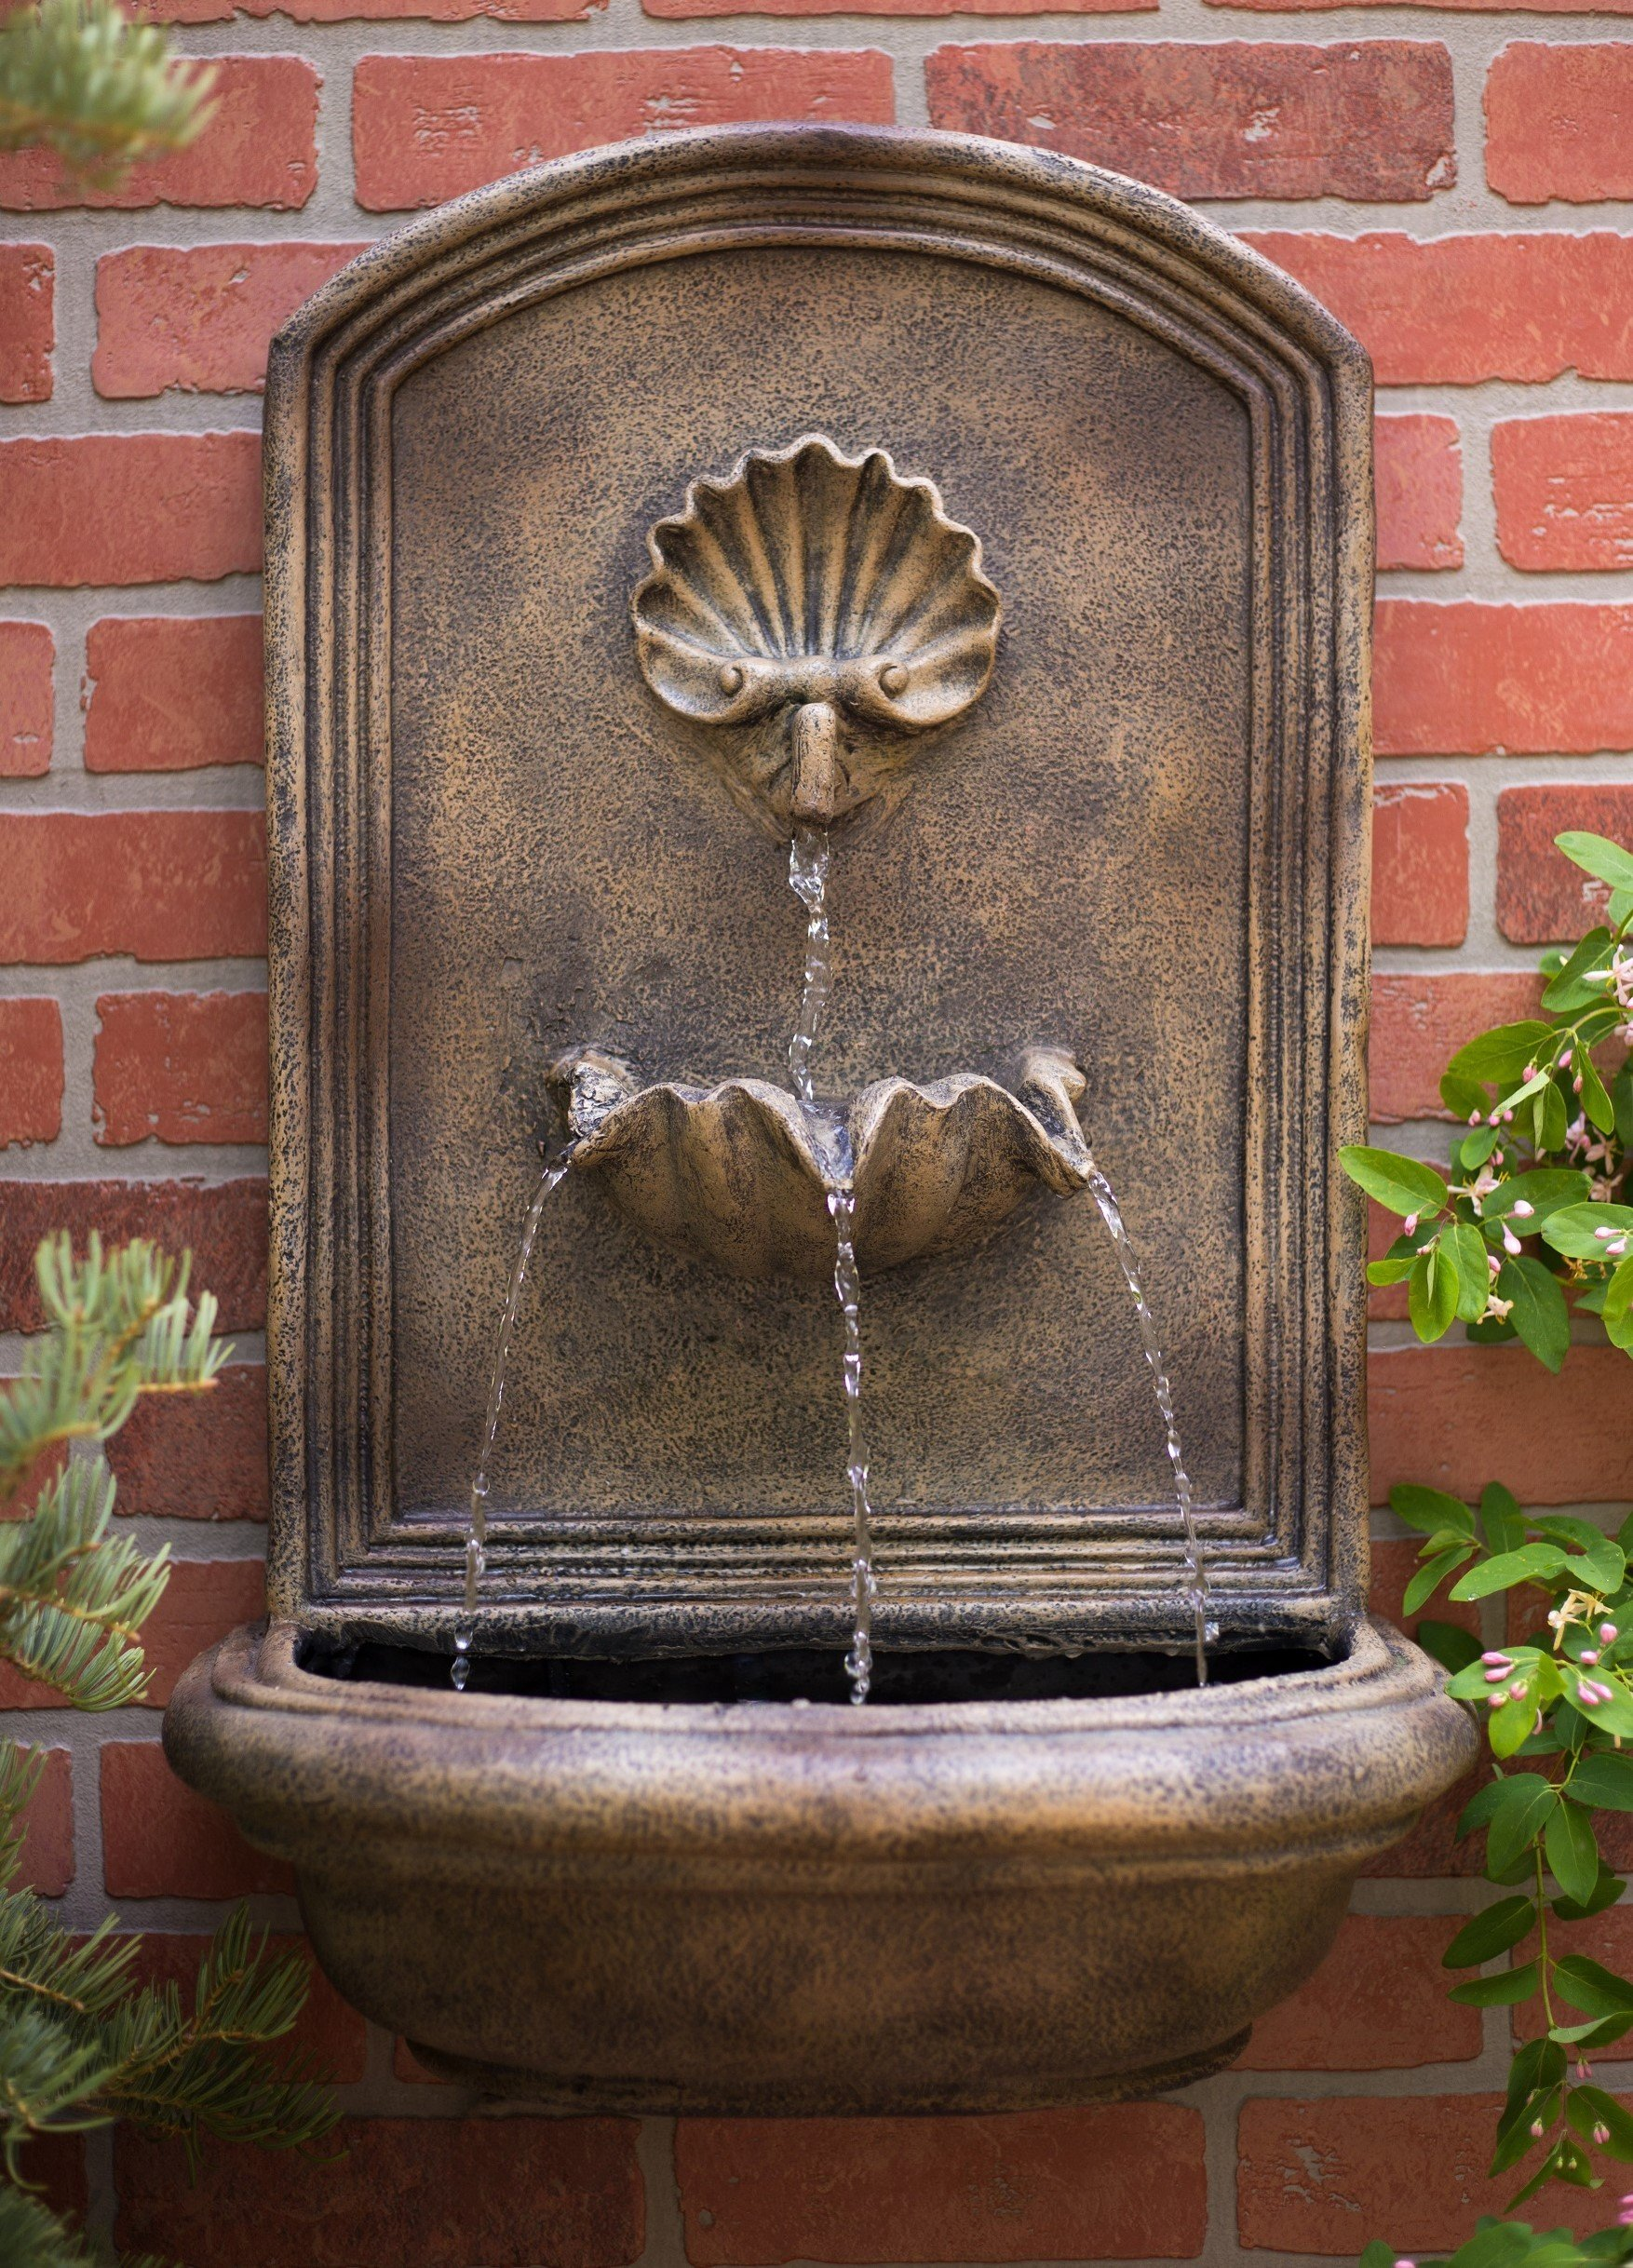 The Napoli - Outdoor Wall Fountain - Florentine Stone Finish - Water Feature for Garden, Patio and Landscape Enhancement